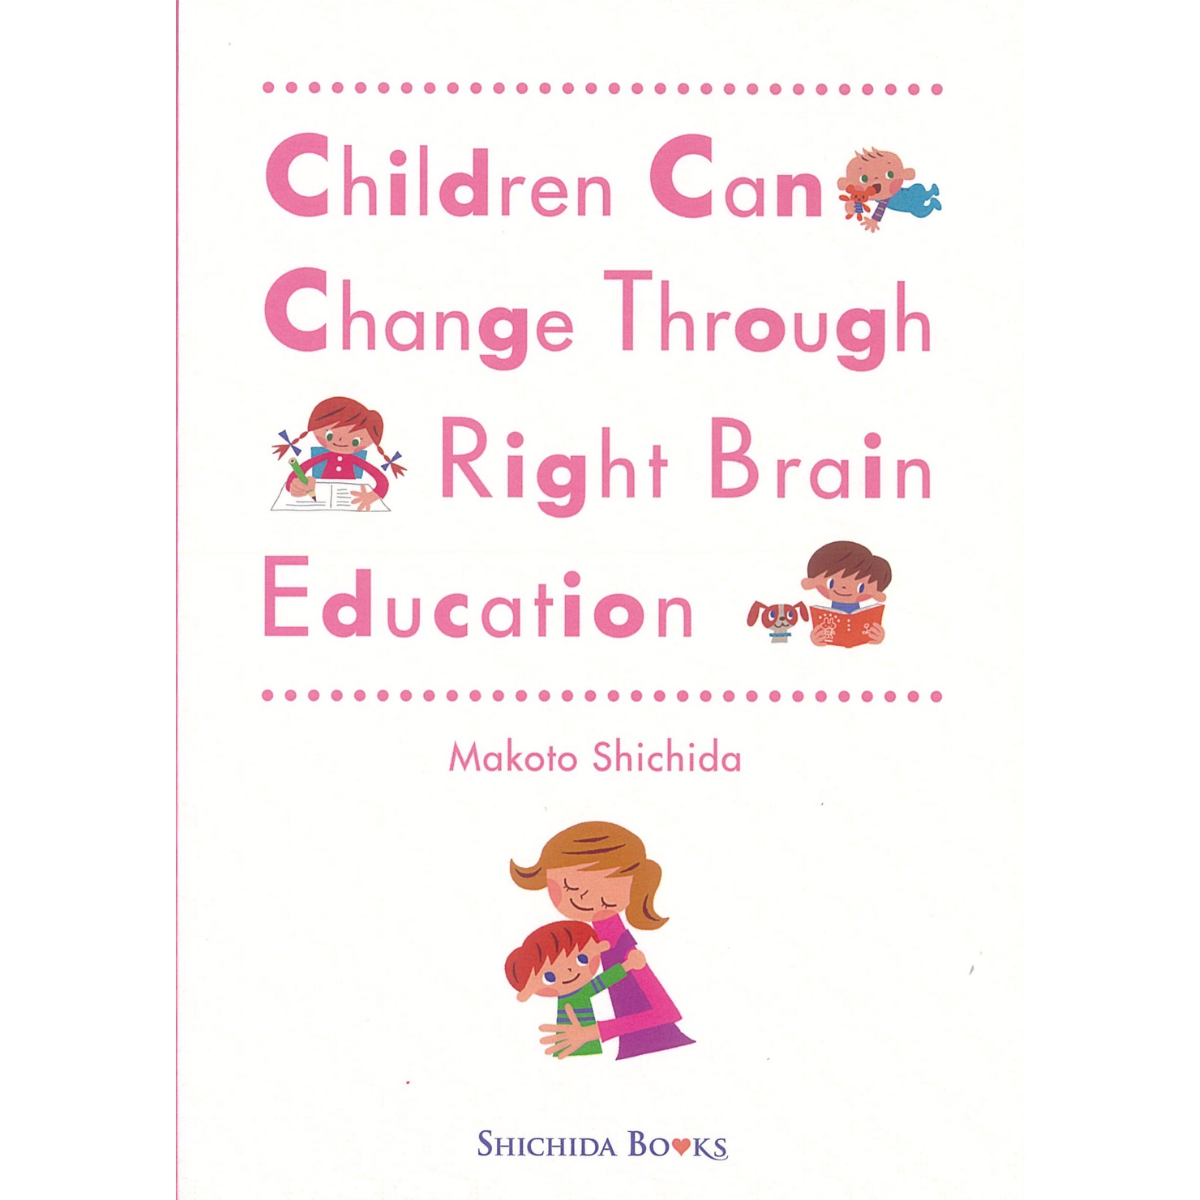 Children can change through the Right Brain Education